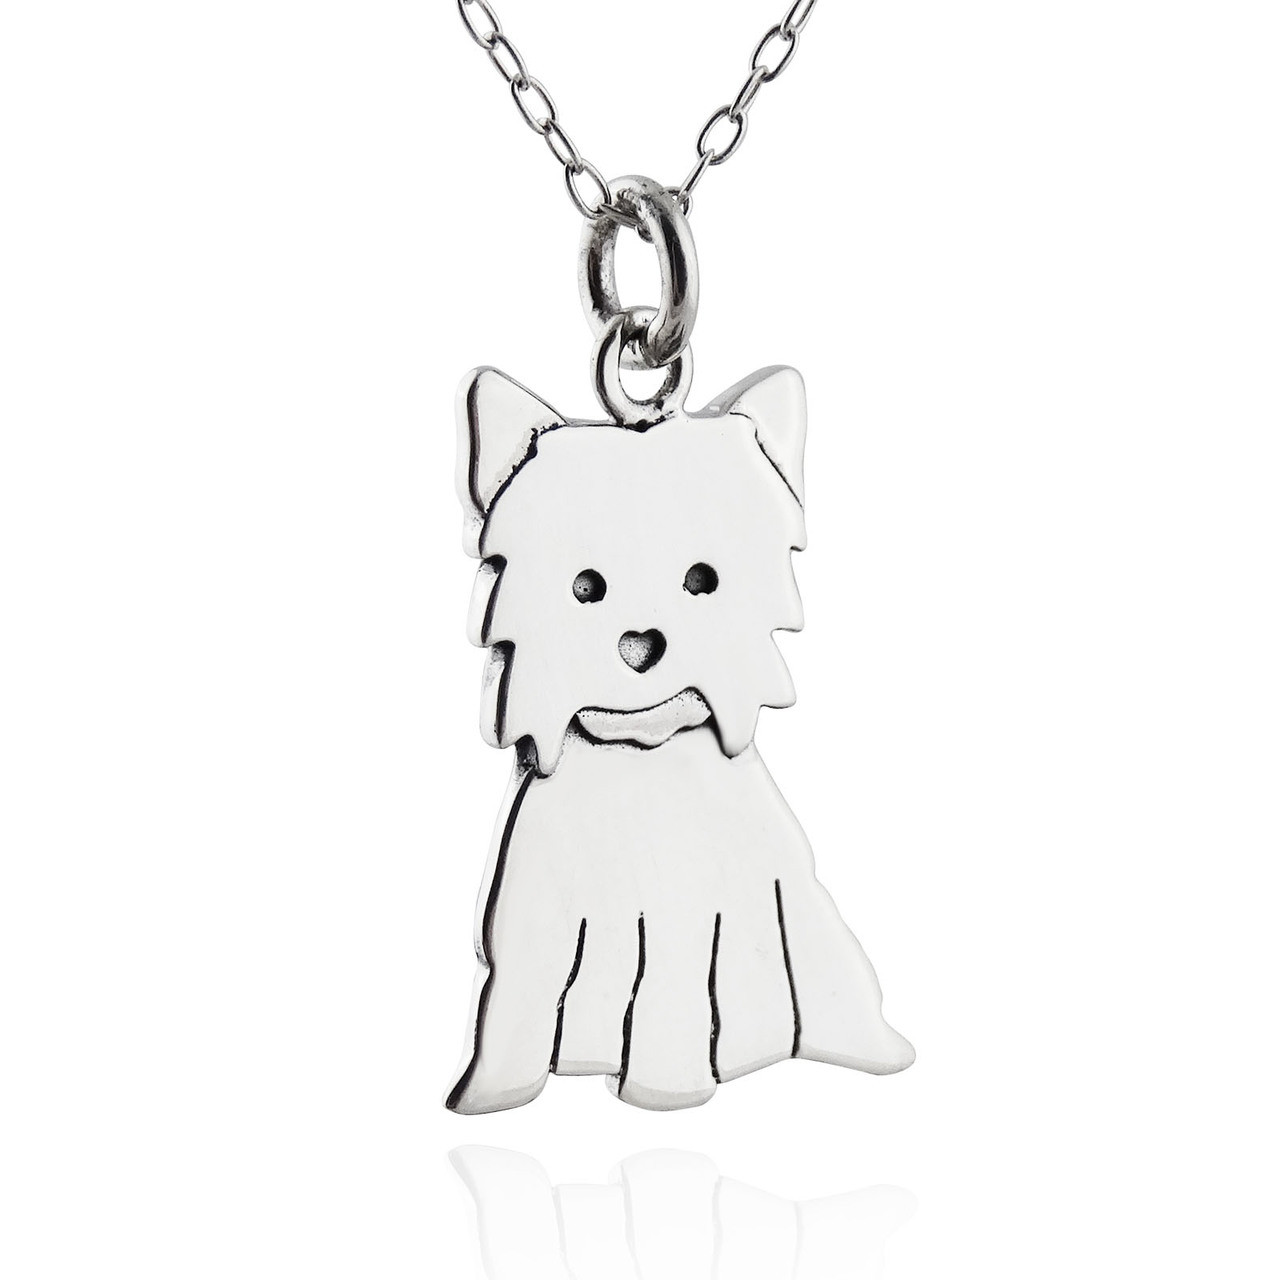 Yorkshire terrier or yorkie necklace sterling silver yorkshire terrier or yorkie necklace sterling silver aloadofball Choice Image